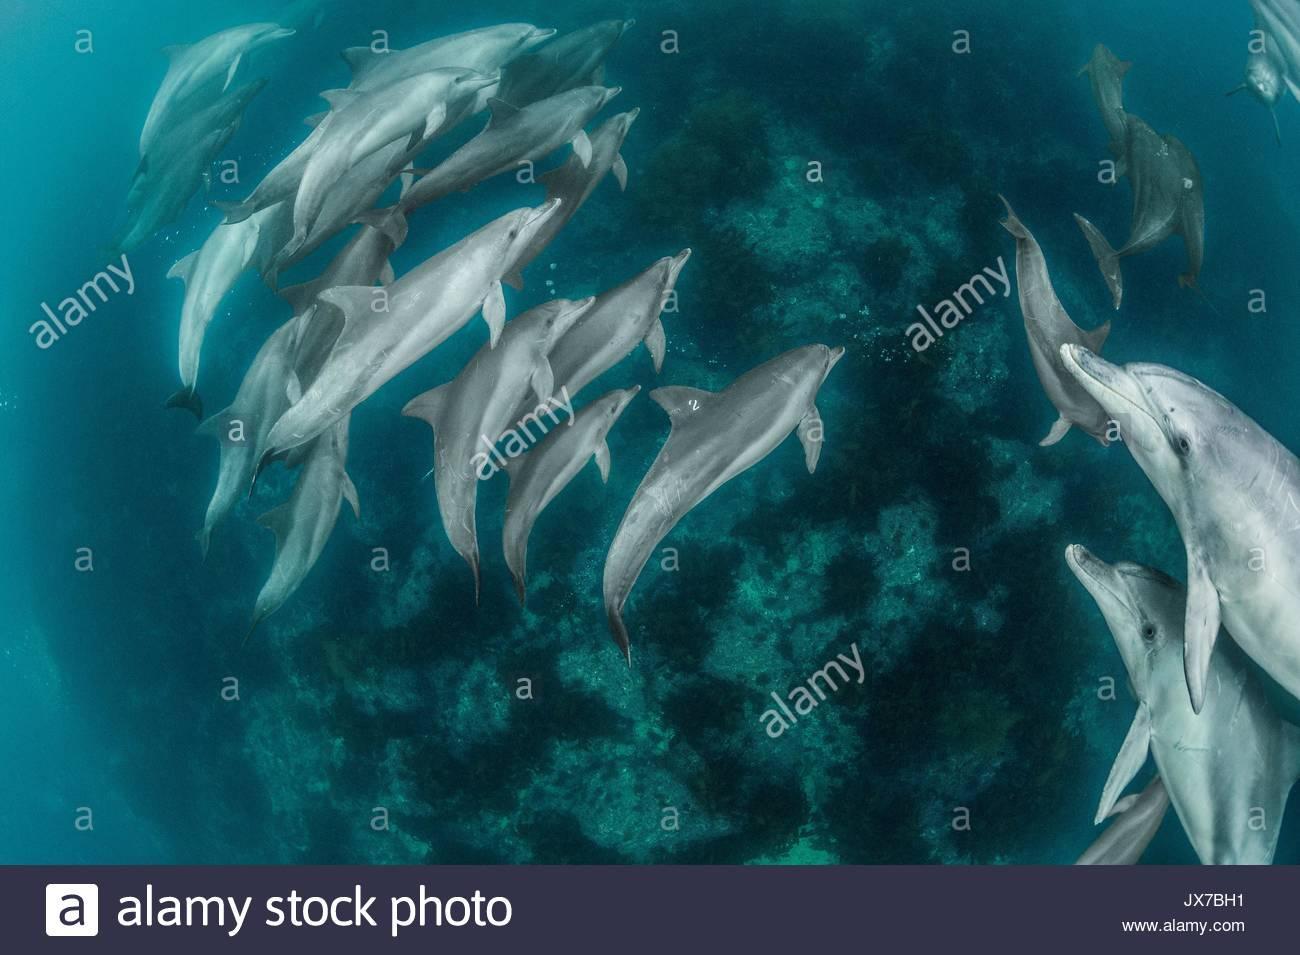 Easily identified by the 2 marked on her dorsal fin, after years in captivity, Chunsam, a released dolphin quickly returns to her native pod. - Stock Image